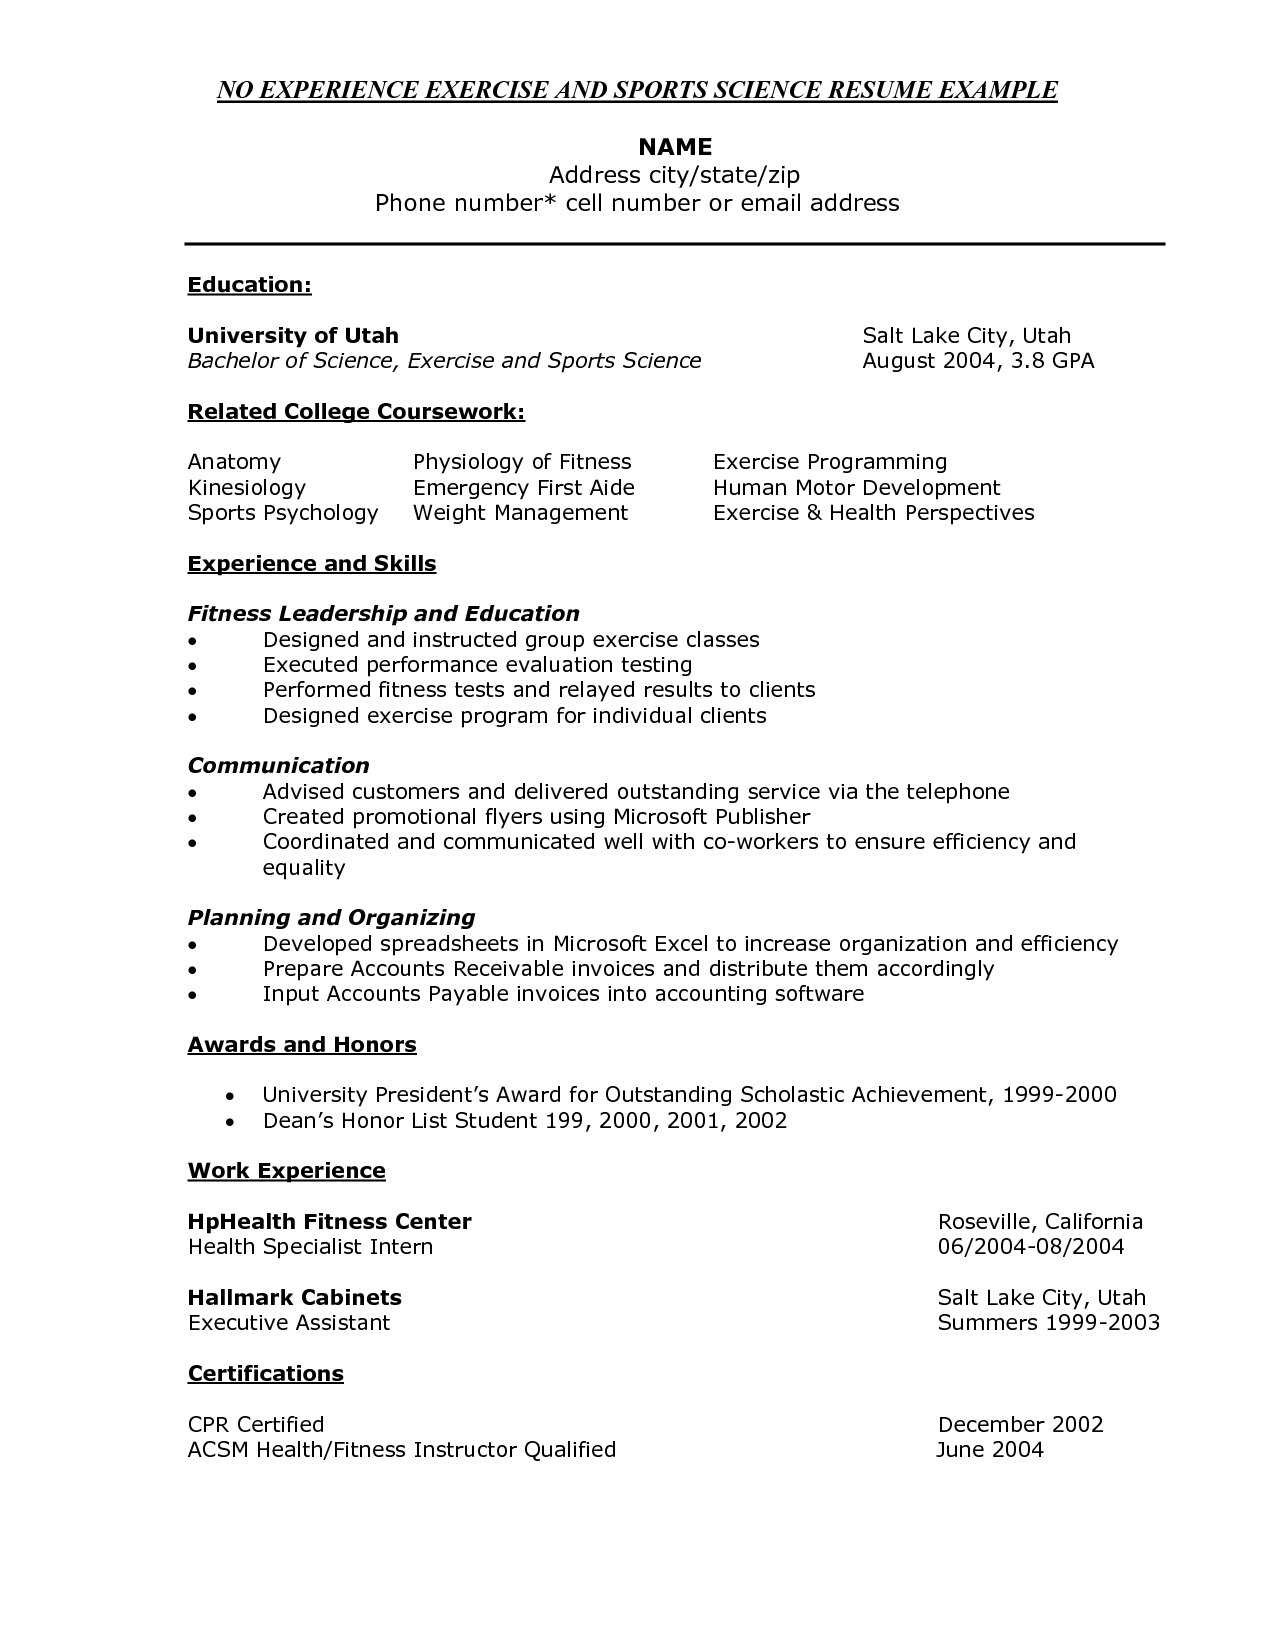 lpn resume cover letter city colleges chicago malcolm career planning samplesample city colleges chicago malcolm career